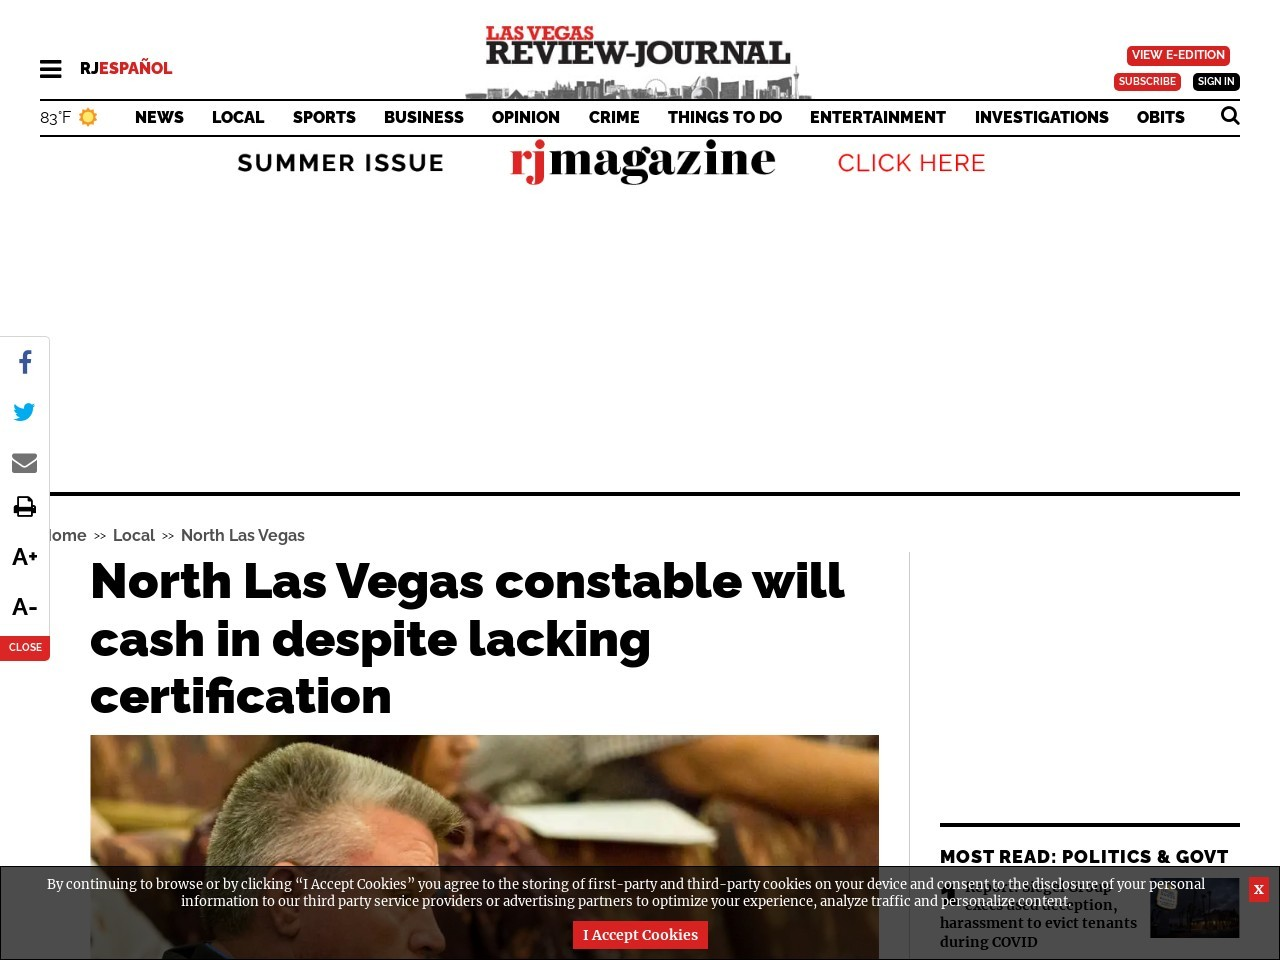 North Las Vegas constable will cash in despite lacking certification